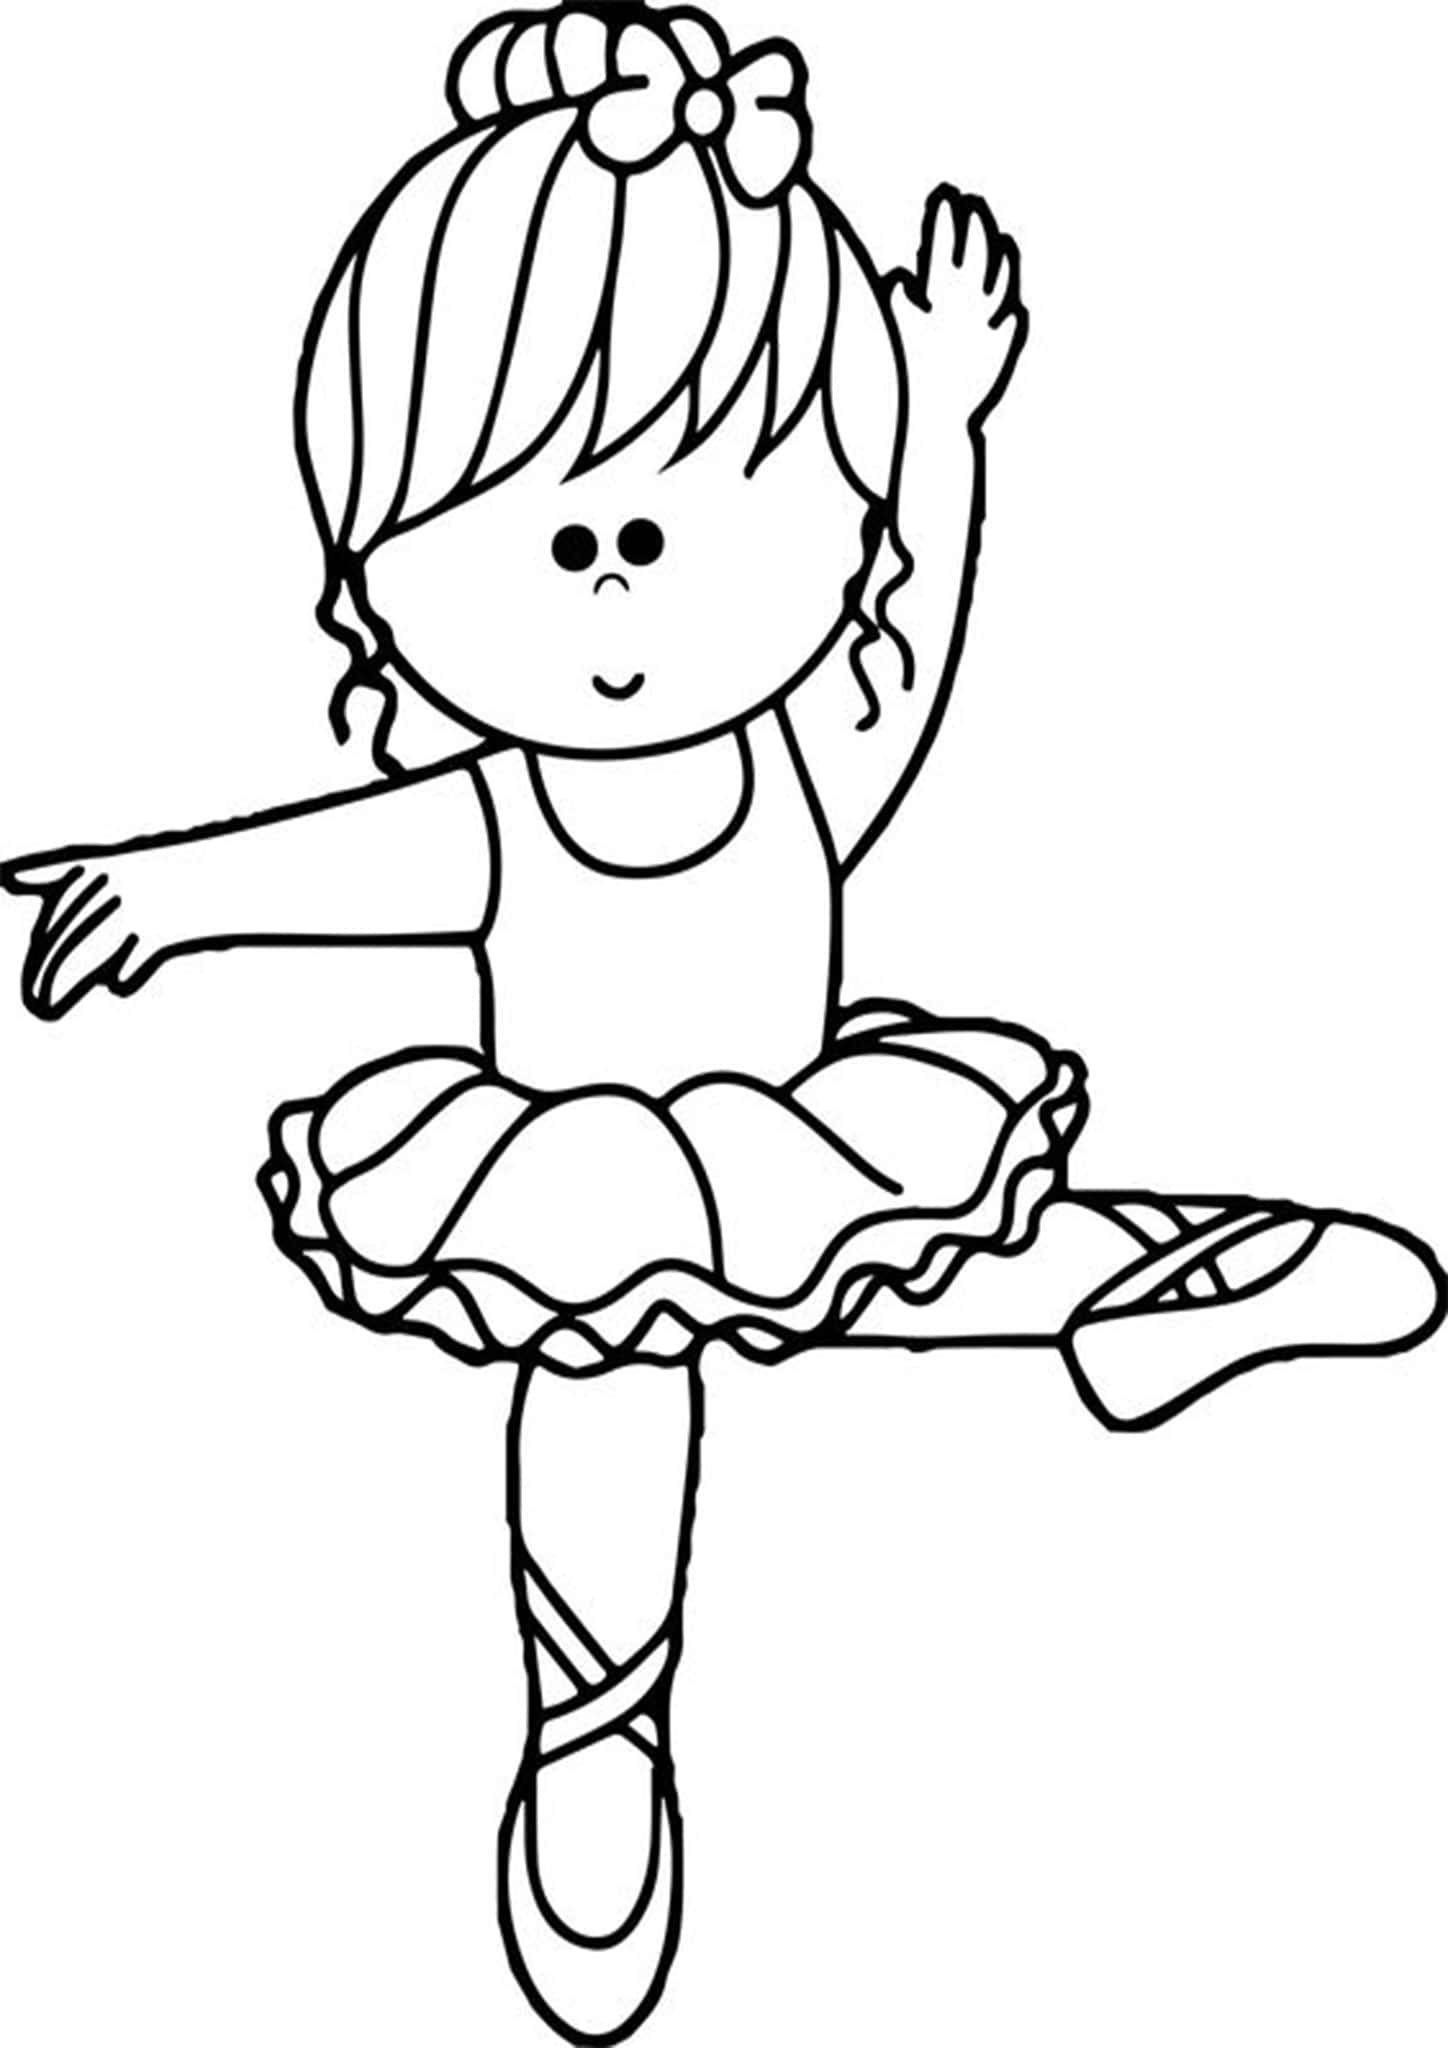 Free Easy To Print Ballerina Coloring Pages Ballerina Coloring Pages Dance Coloring Pages Kitty Coloring